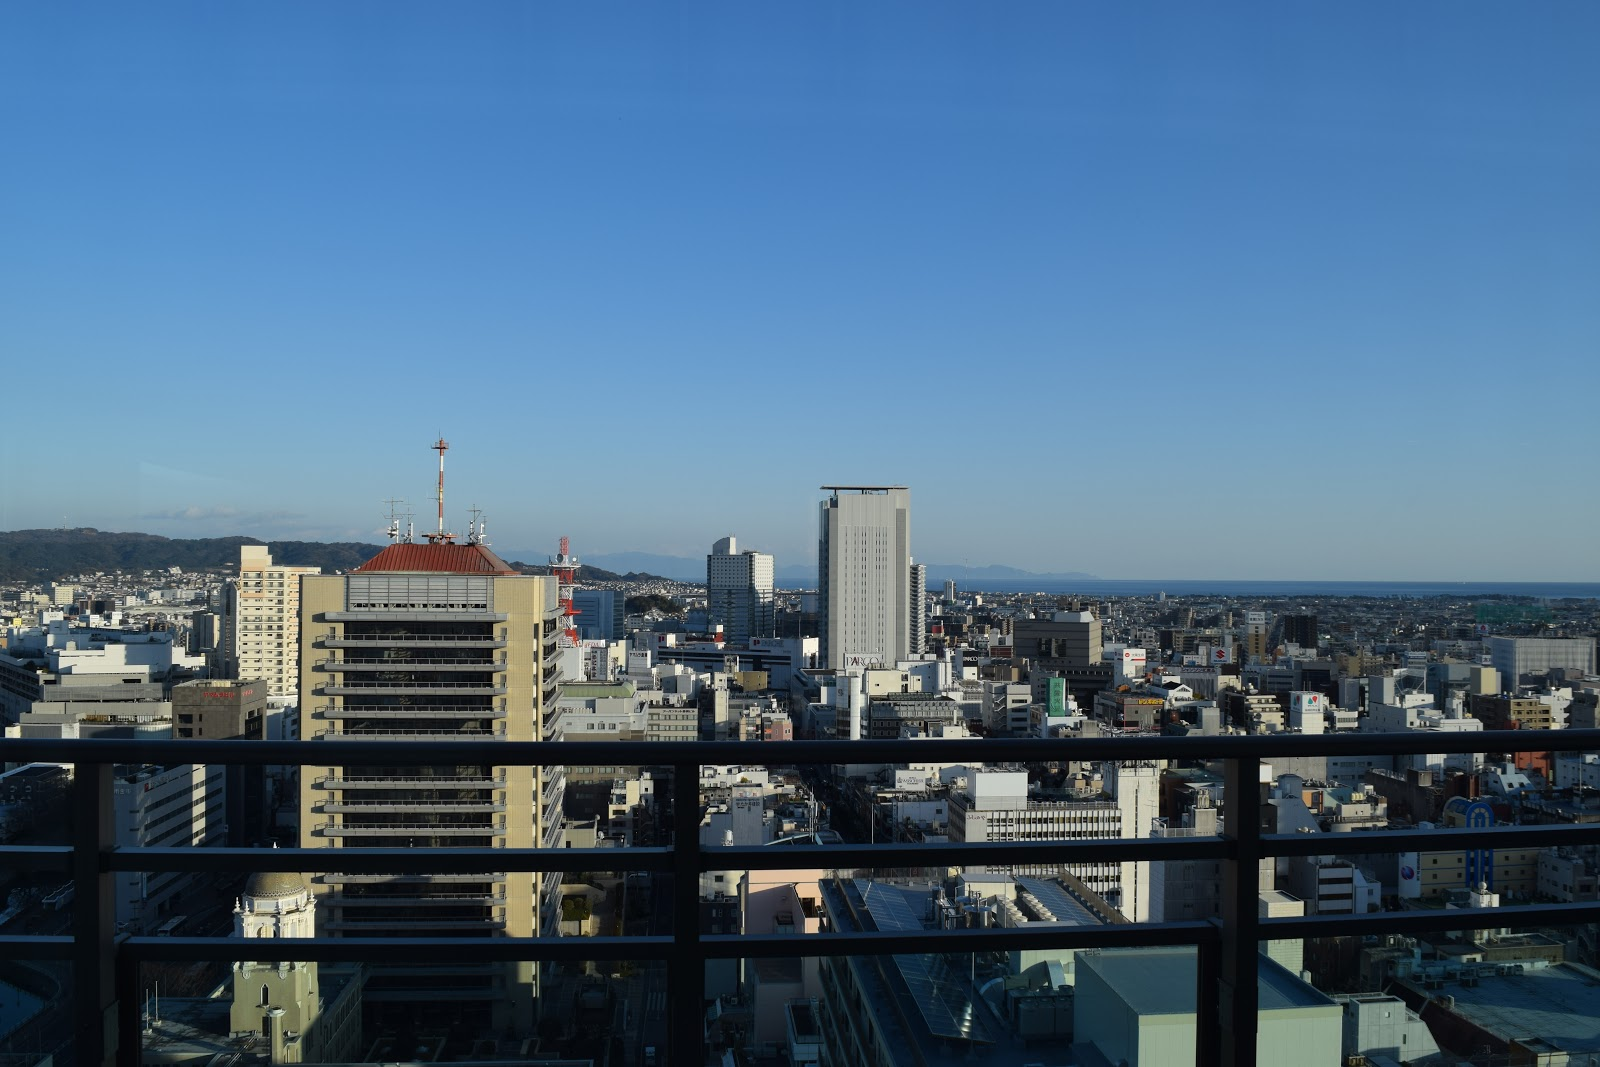 The view of Shizuoka city and the sea from my friend's apartment building